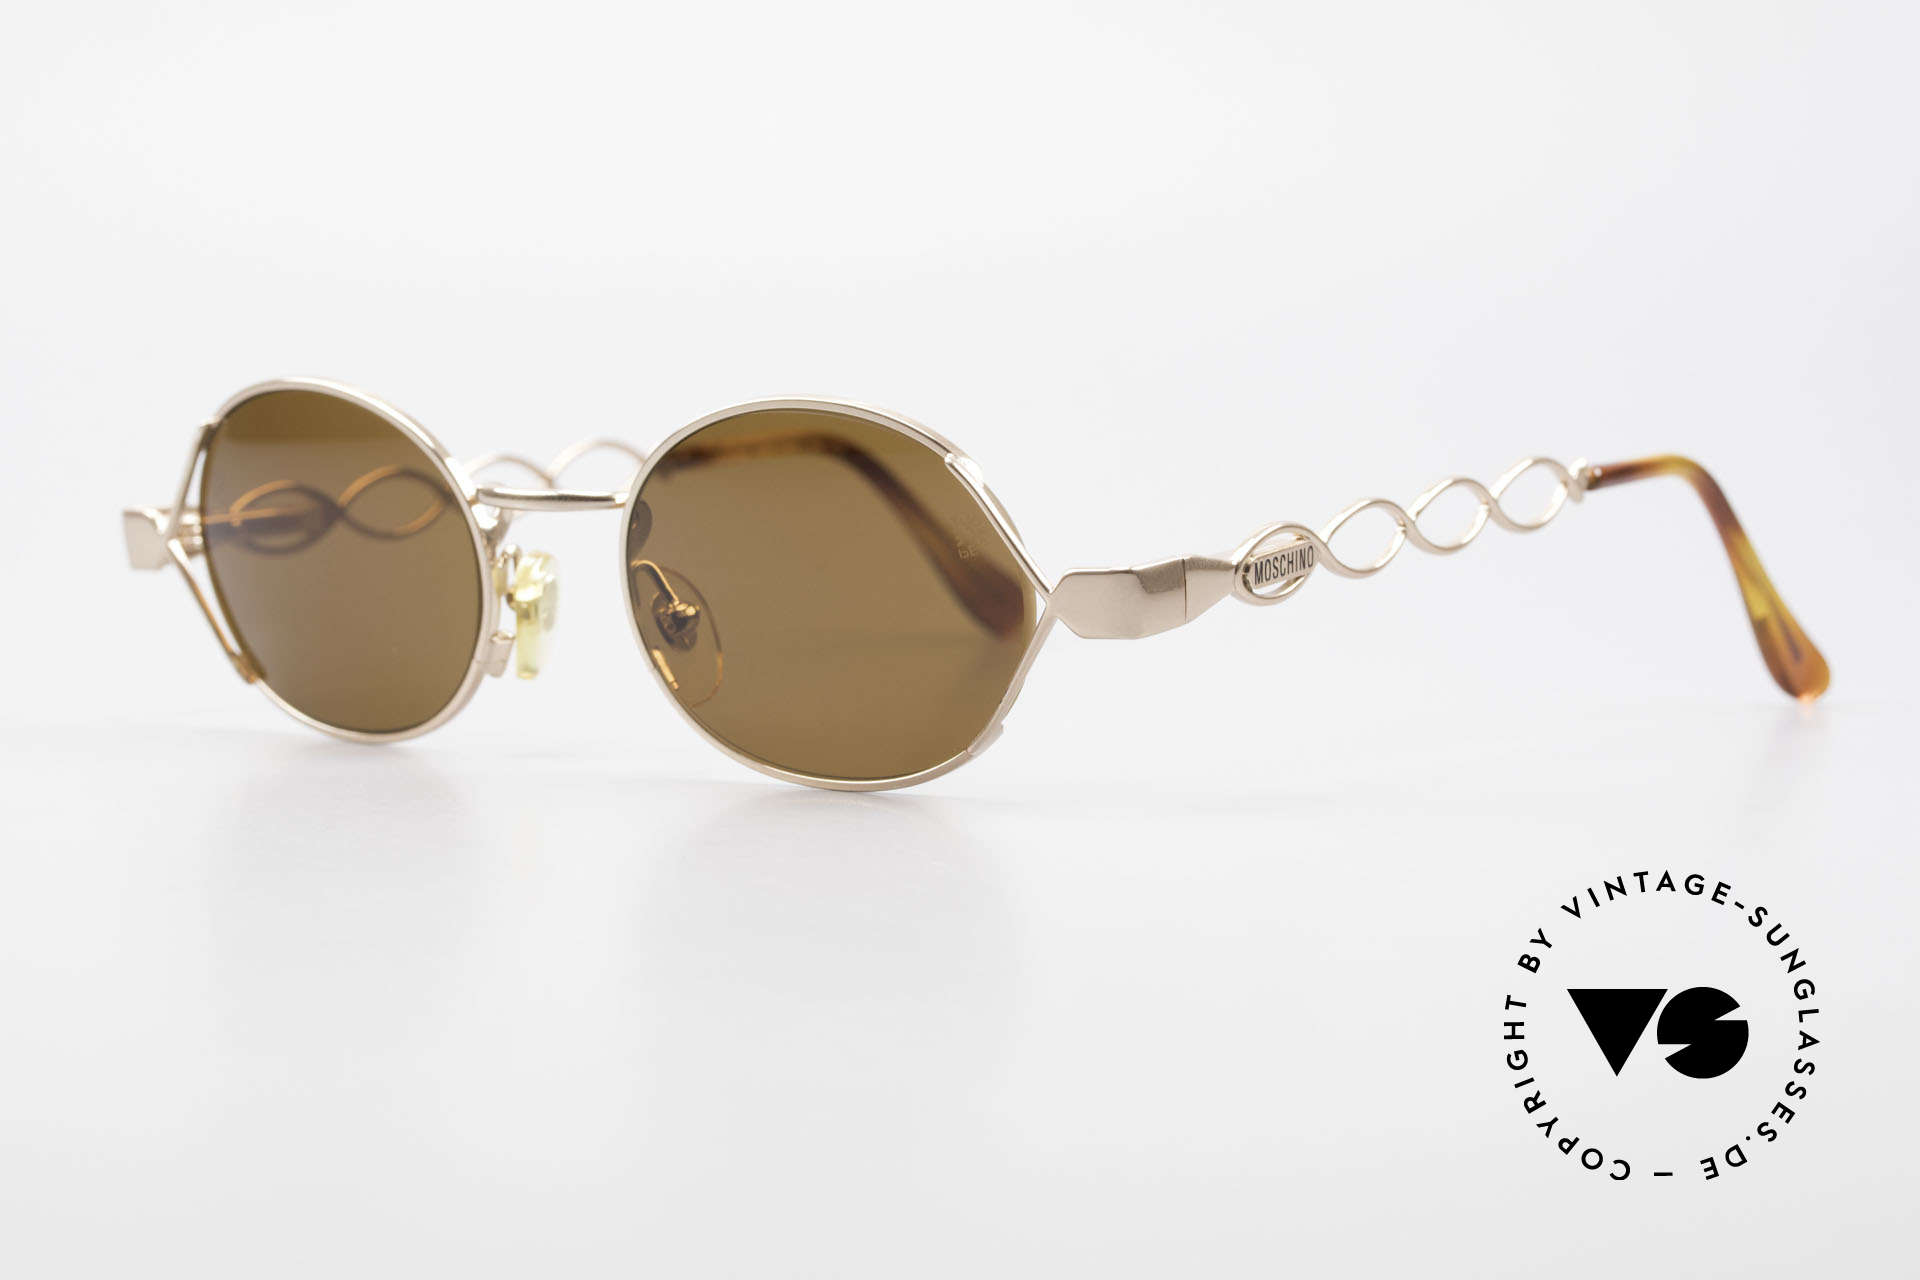 Moschino MM344 Ladies Designer Sunglasses 90s, Persol produced the Moschino creations in the 90s, Made for Women